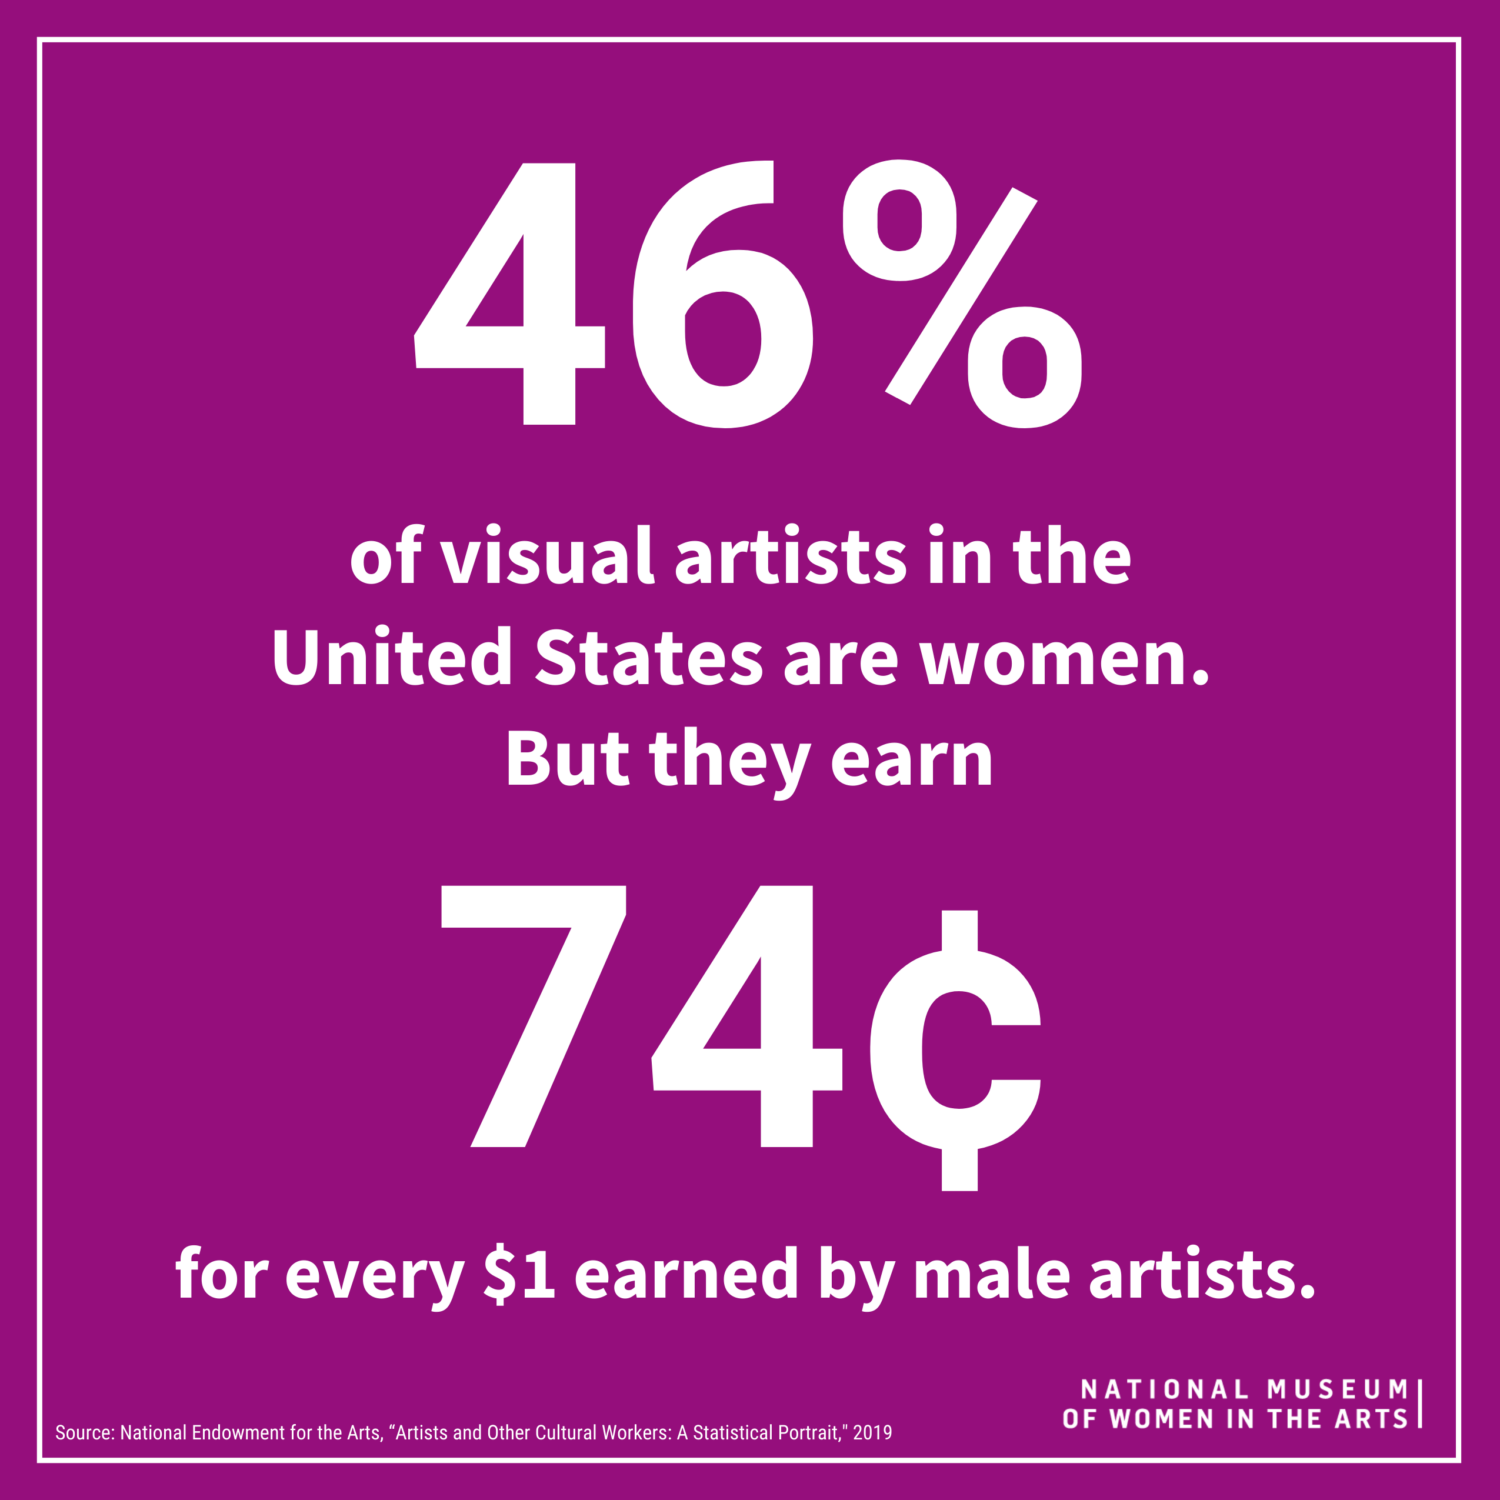 White text against a violet background reads: '46% of visual artists in the United States are women. But they earn 74 cents for every $1 earned by male artists.'